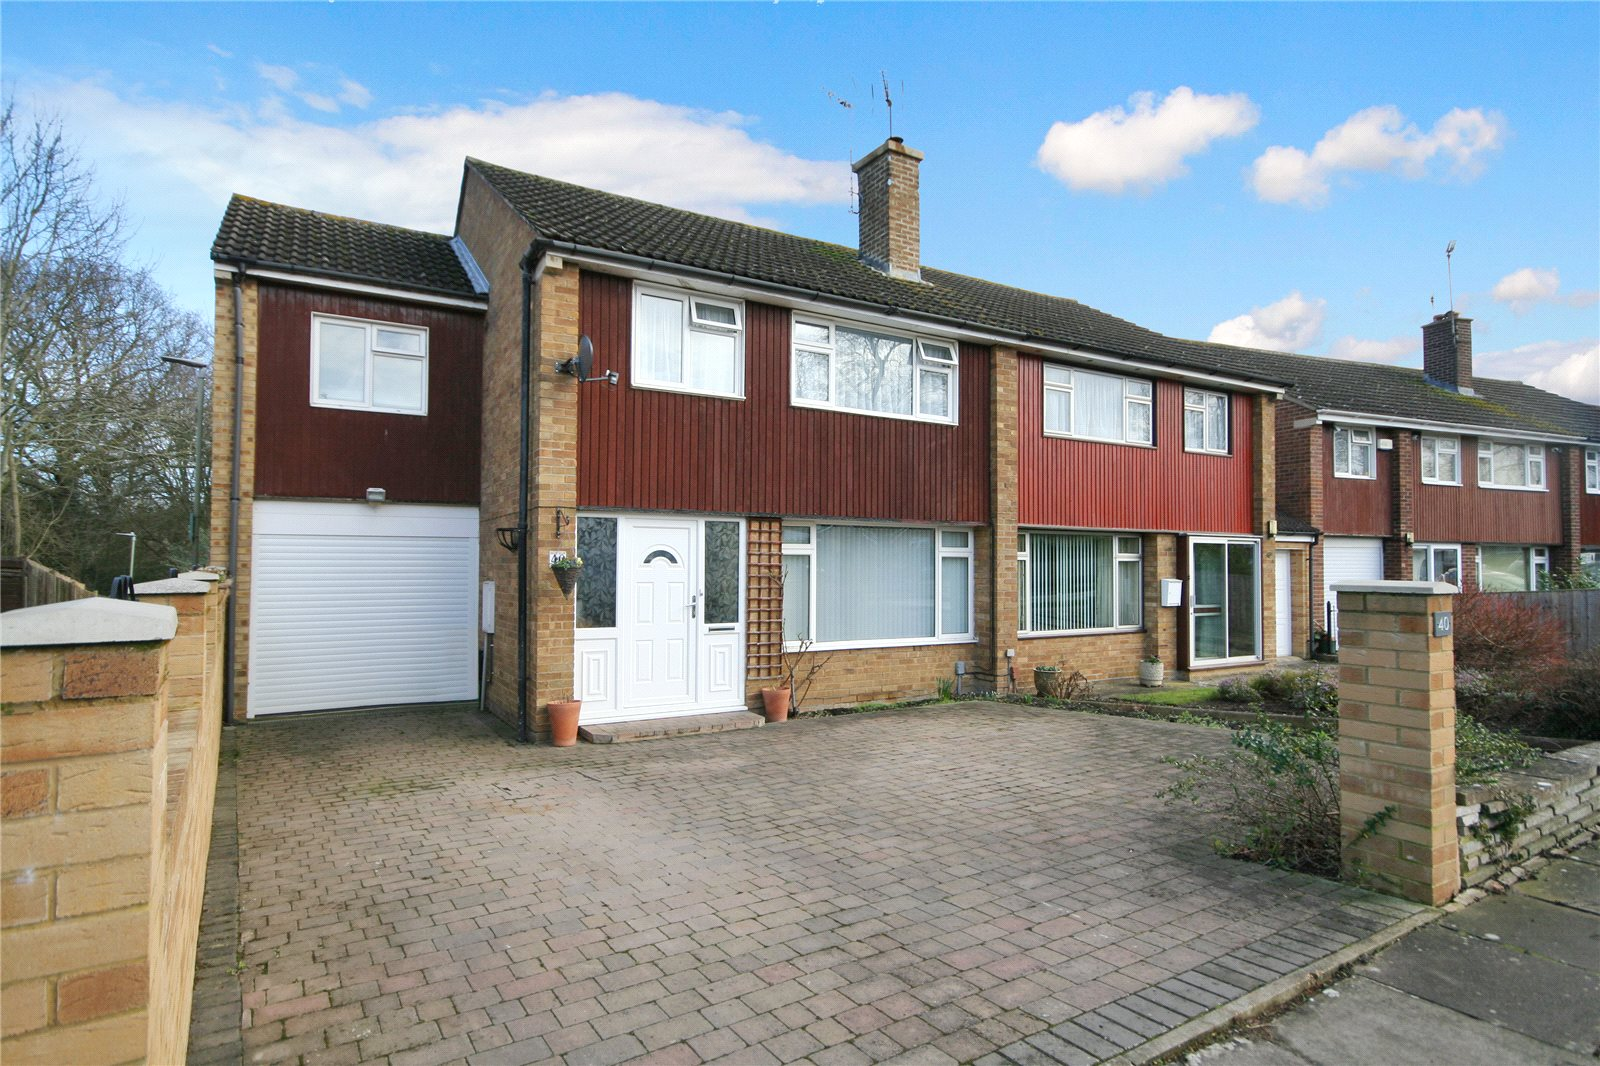 4 Bedrooms Semi Detached House for sale in Willersey Road Benhall Cheltenham GL51